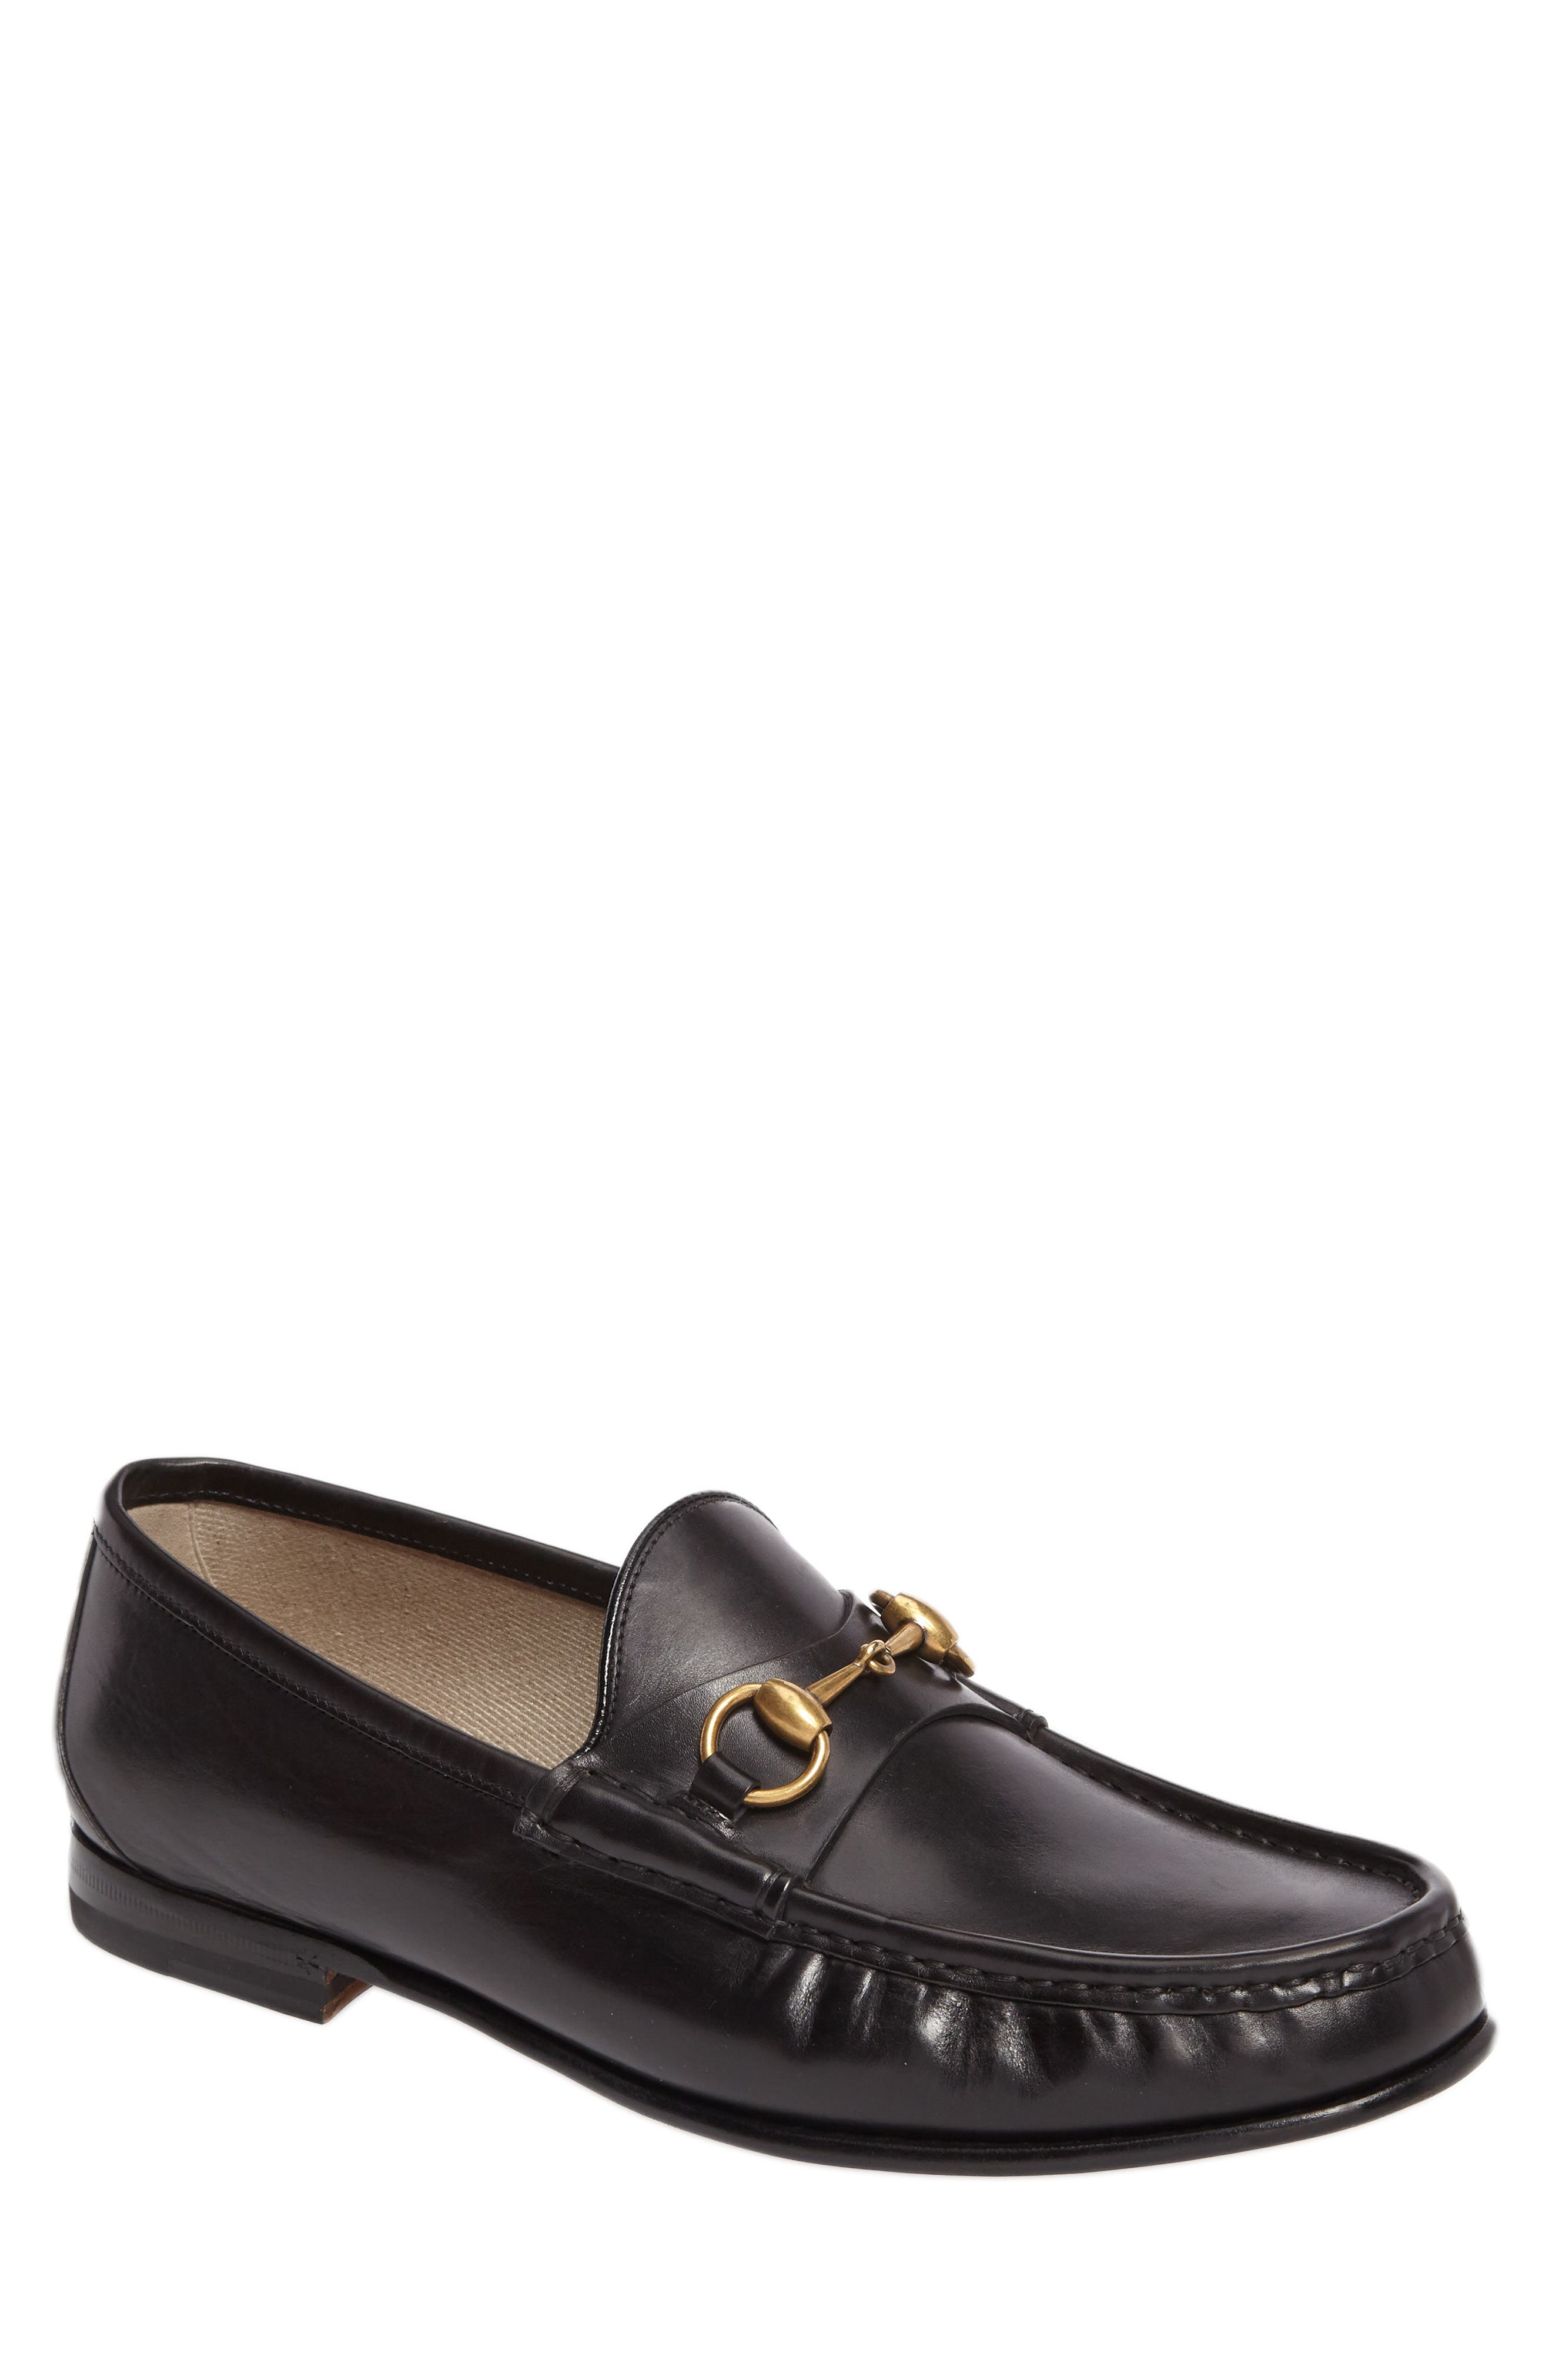 'Roos' Bit Loafer,                         Main,                         color, Nero